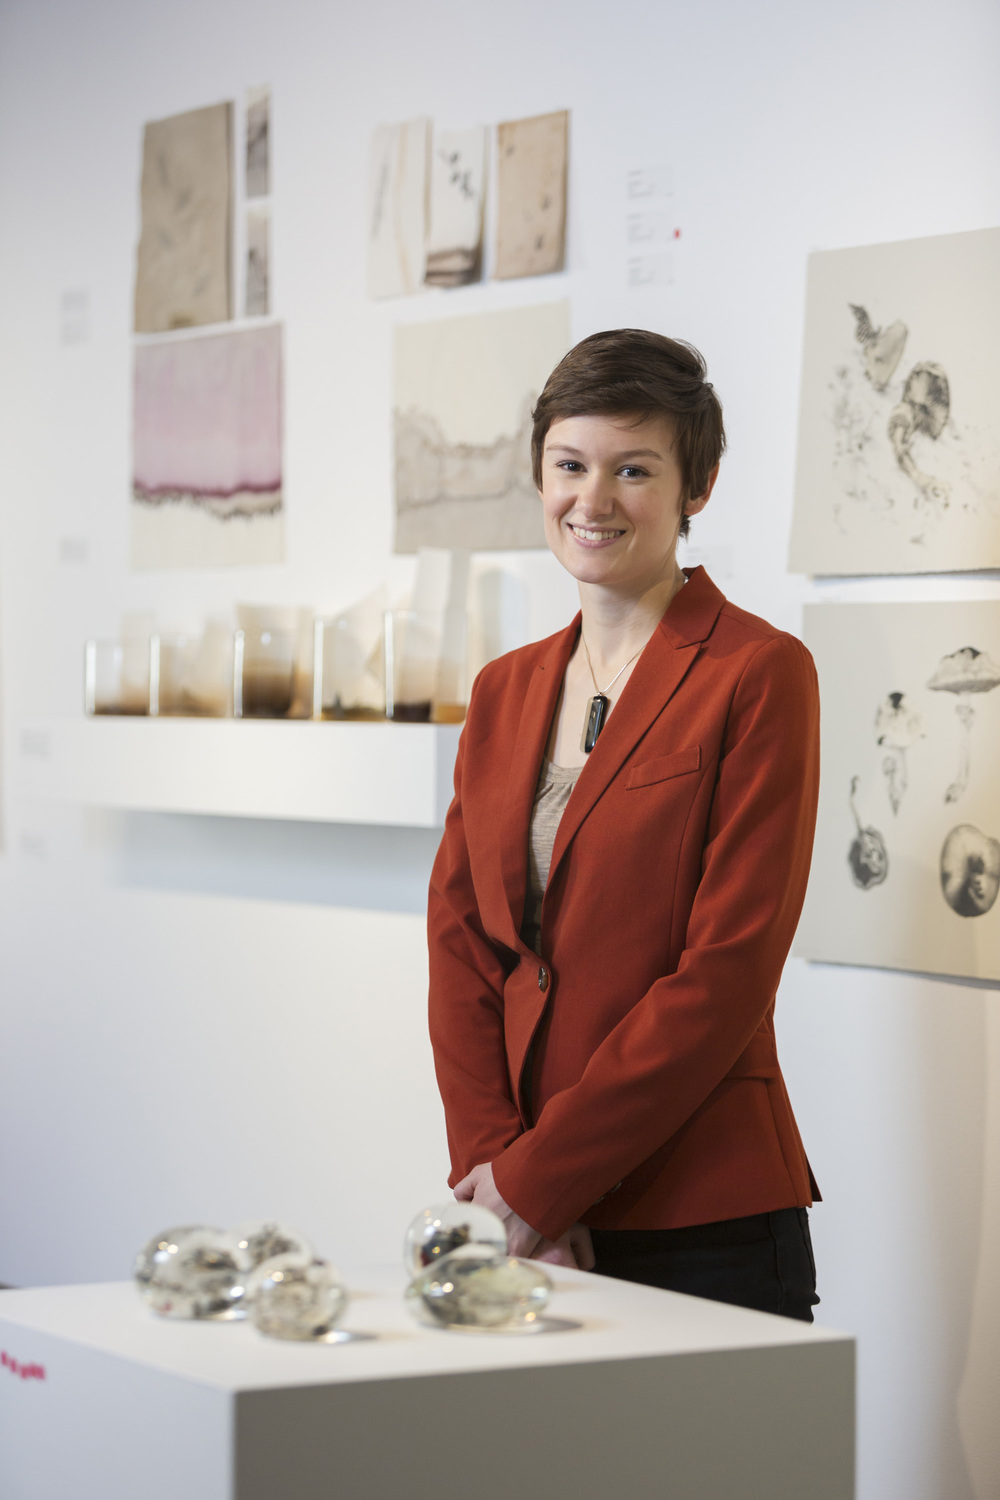 Emilie Patteson, 2014 (photo by Adam McGrath), Canberra Glassworks GLINT exhibition install